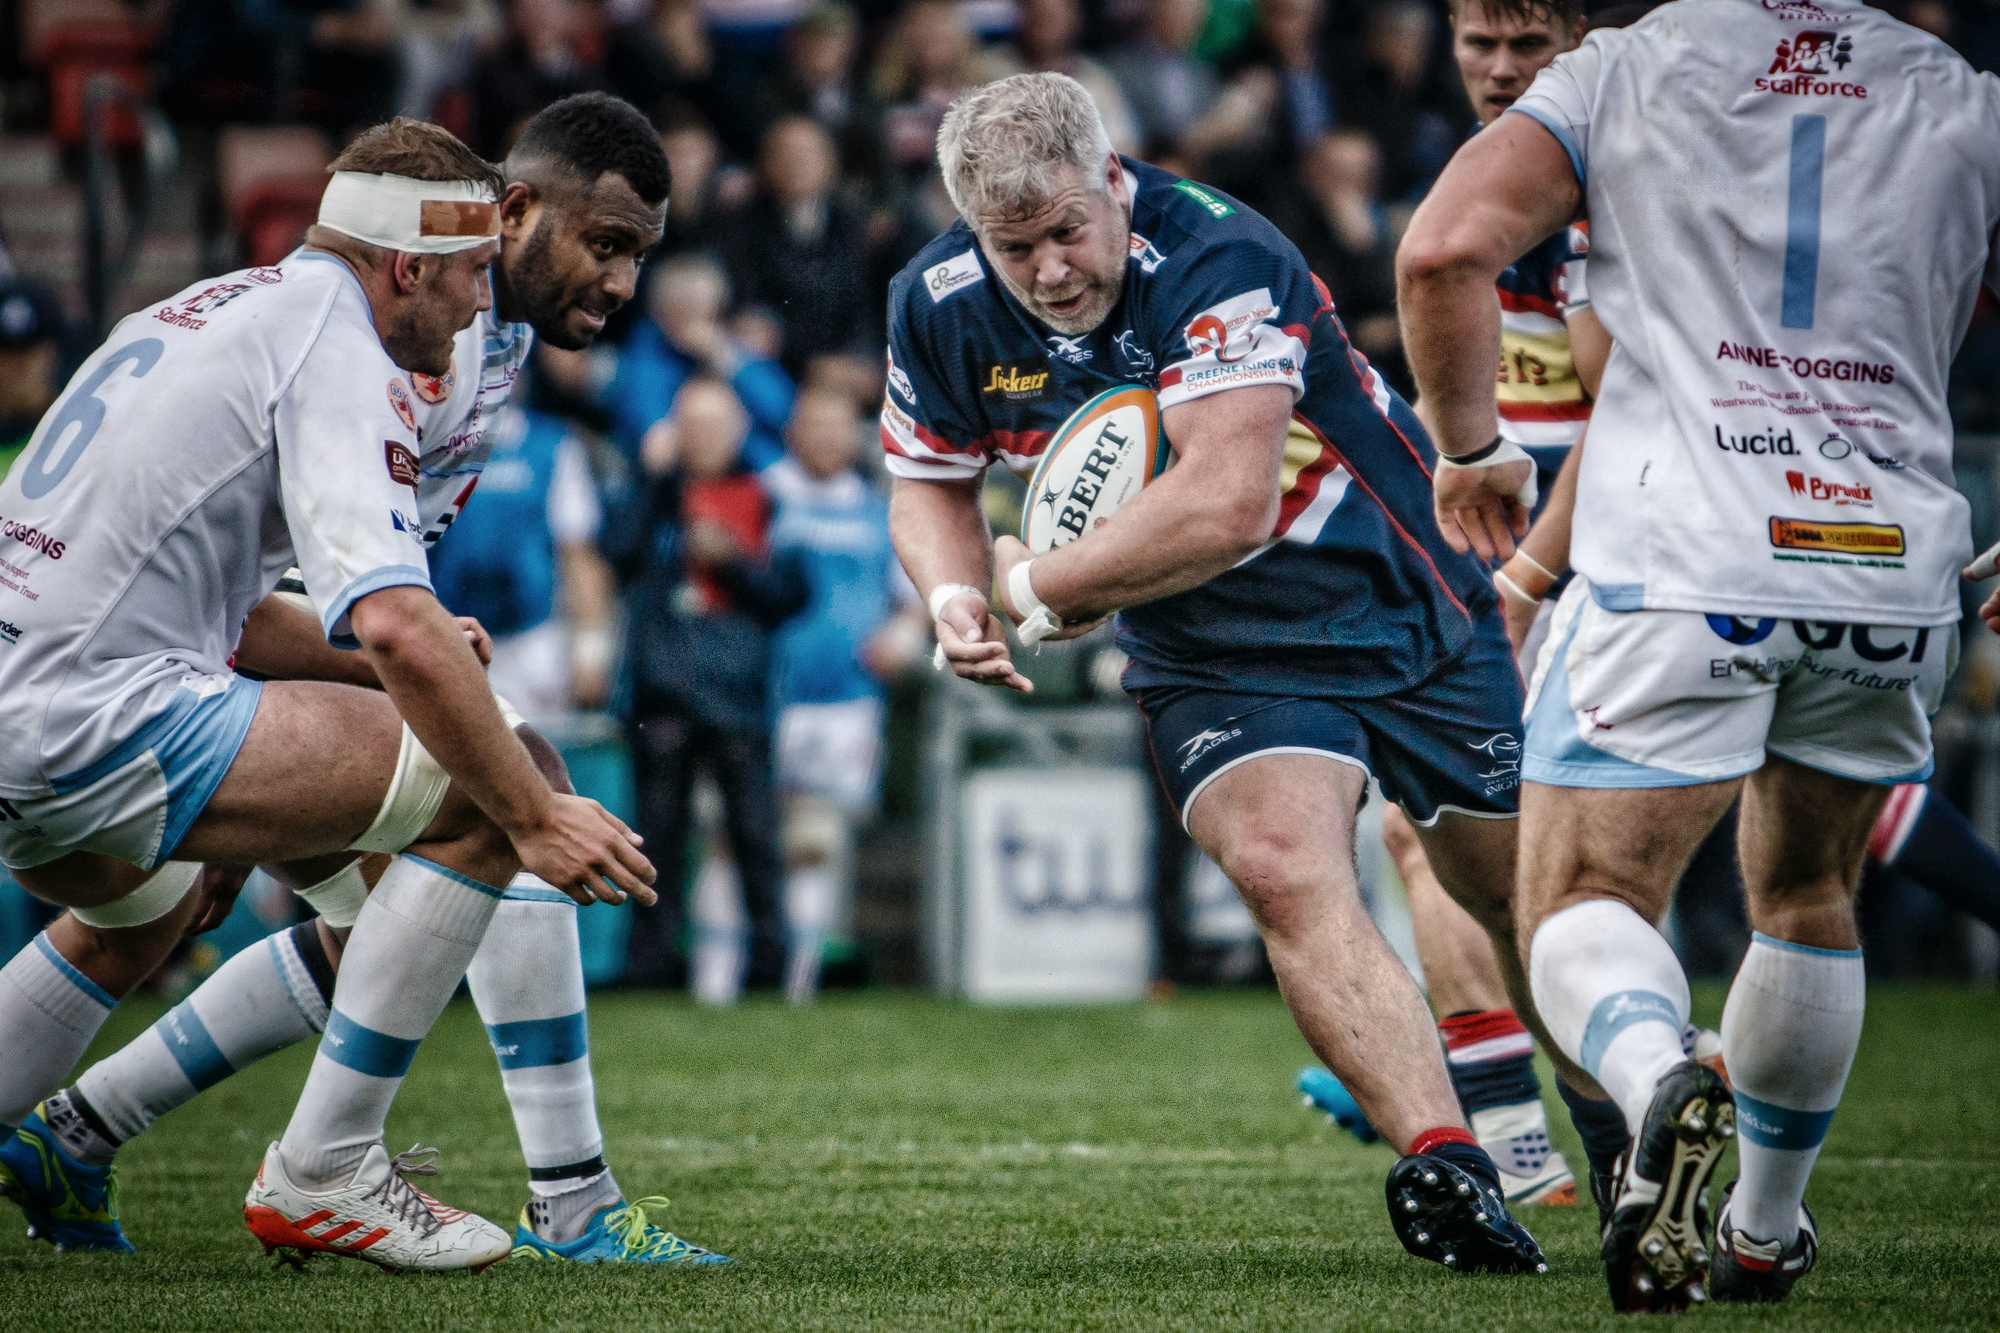 Colin Quigley fully deserved his man of the match award - a thorn in the Titans' side all match